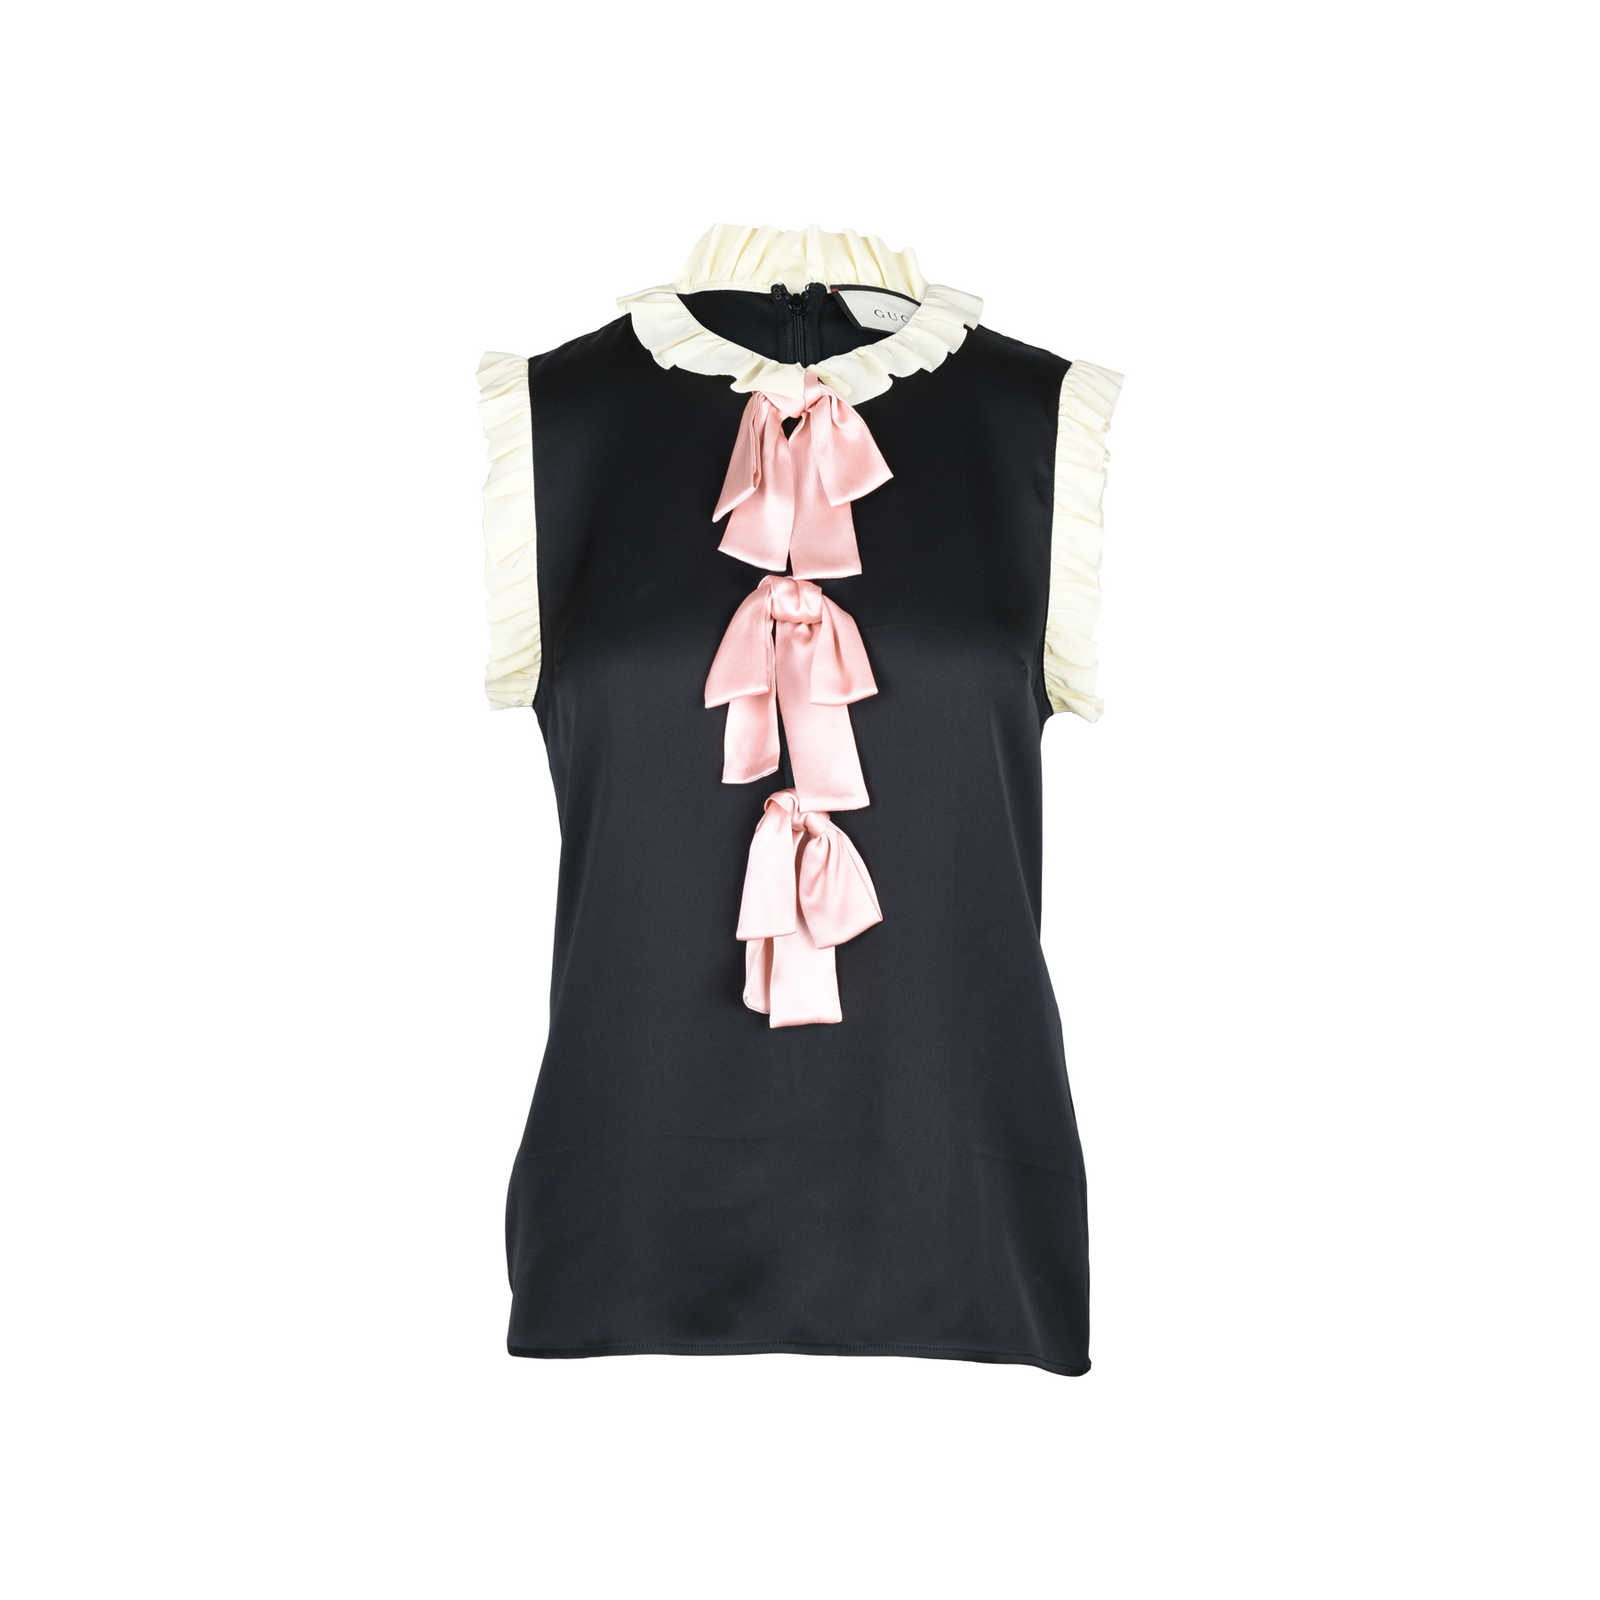 36d2968af1cb16 Authentic Second Hand Gucci Ruffled Trim Silk Blouse With Bows  (PSS-051-00219 ...